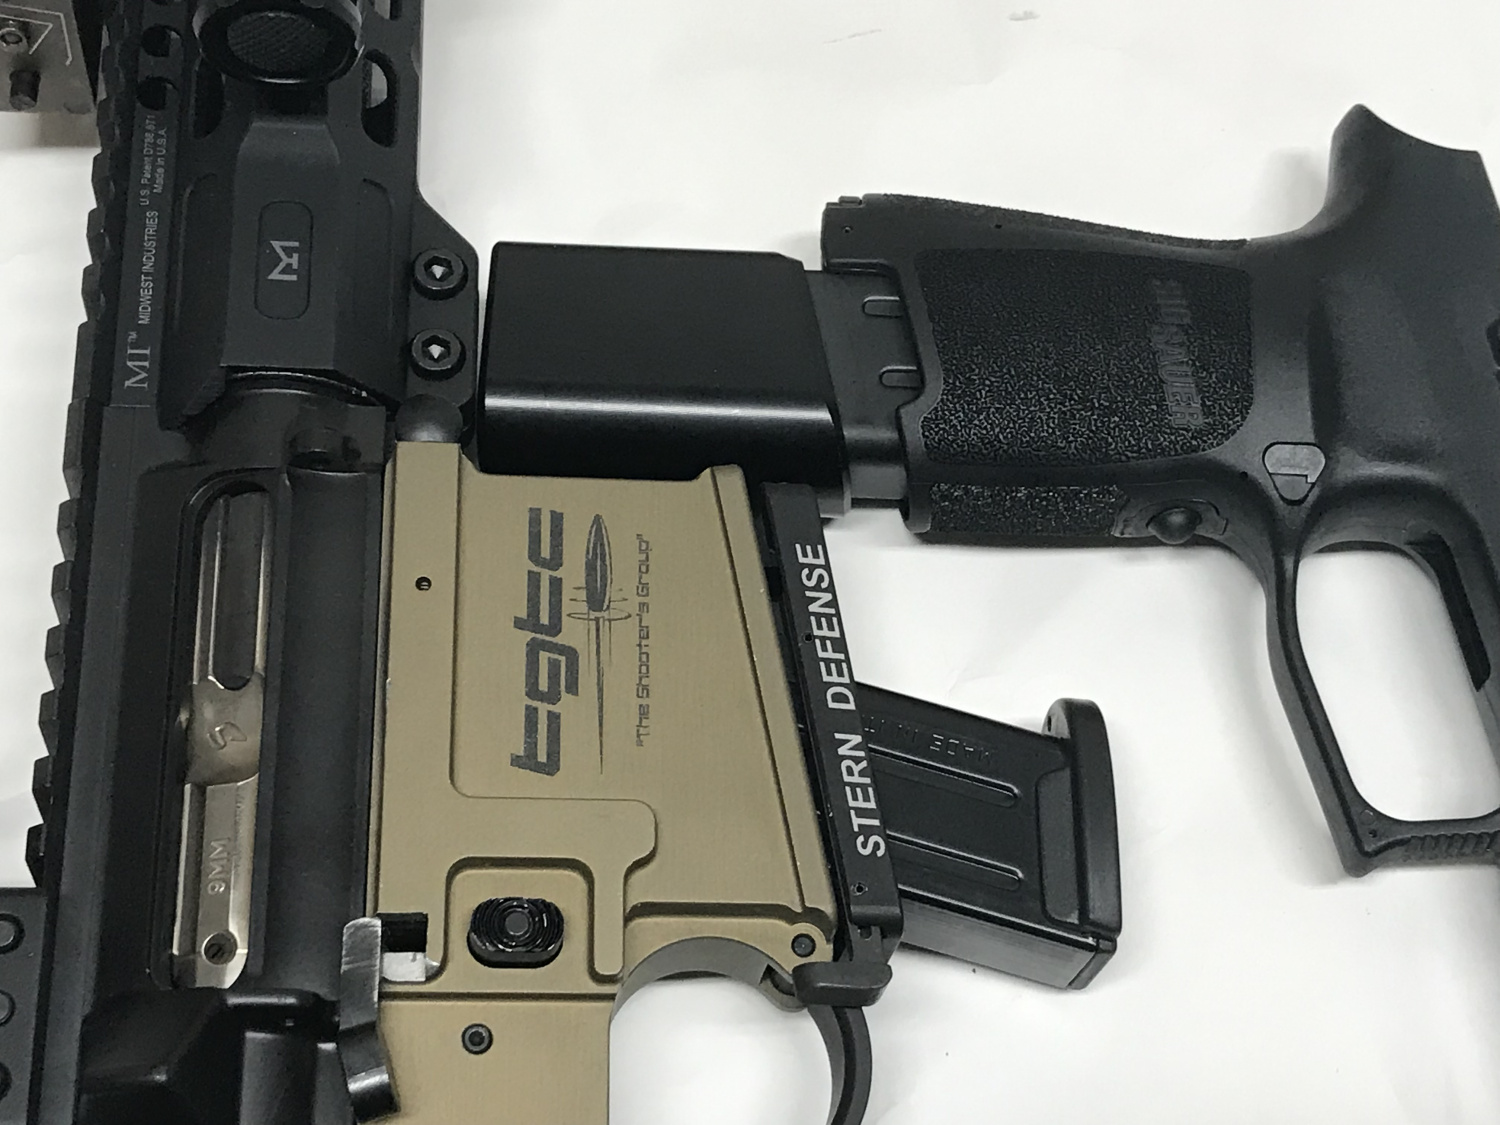 Stern Defense SIG P320/S&W M&P9 Mag Adapter -The Firearm Blog